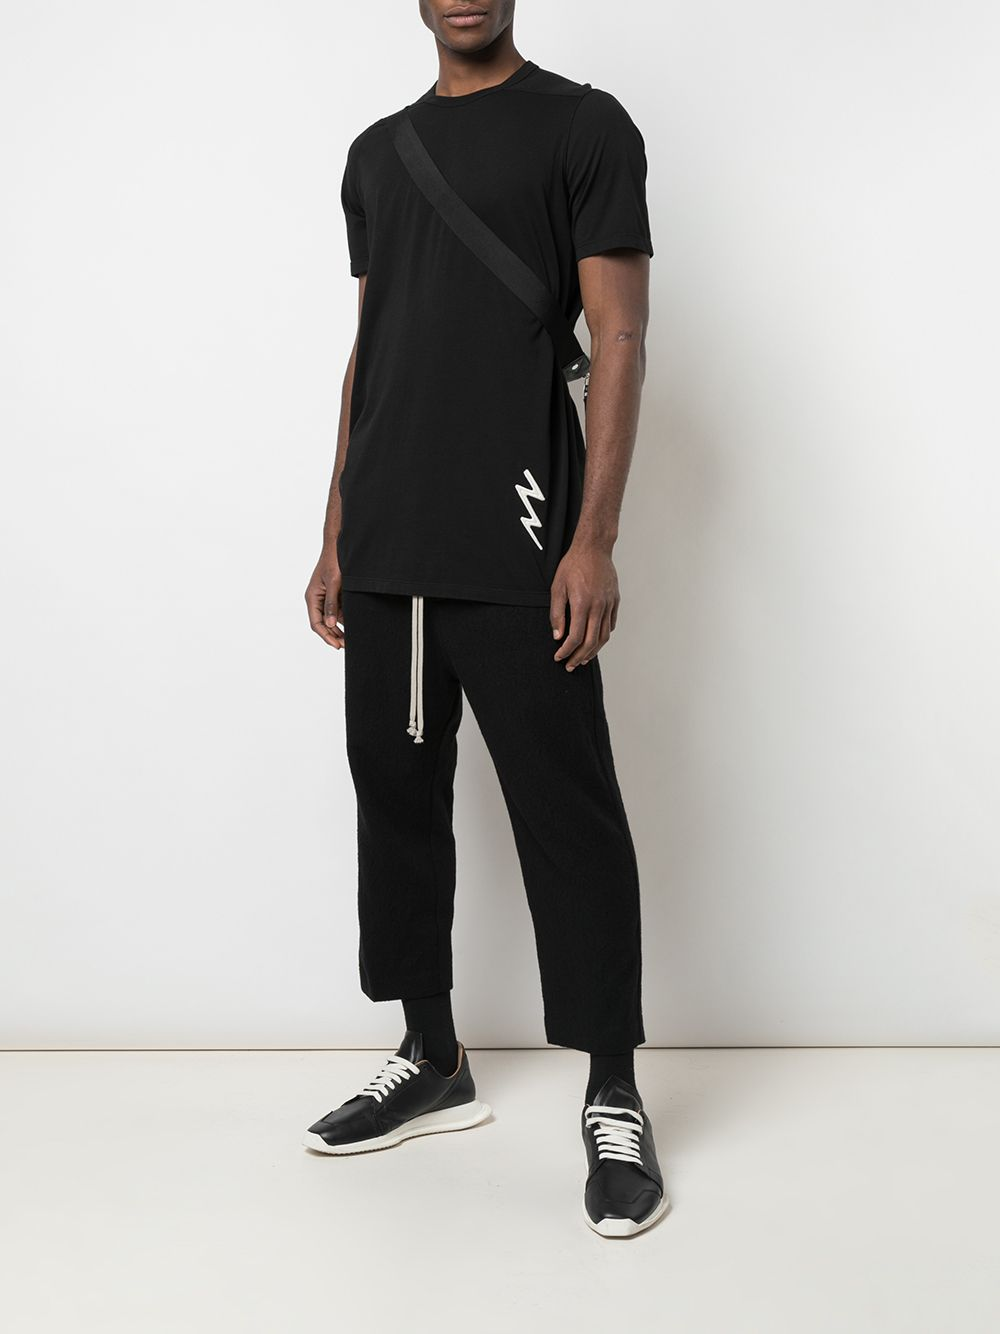 RICK OWENS MEN DRAWSTRING CROPPED ASTAIRE PANTS